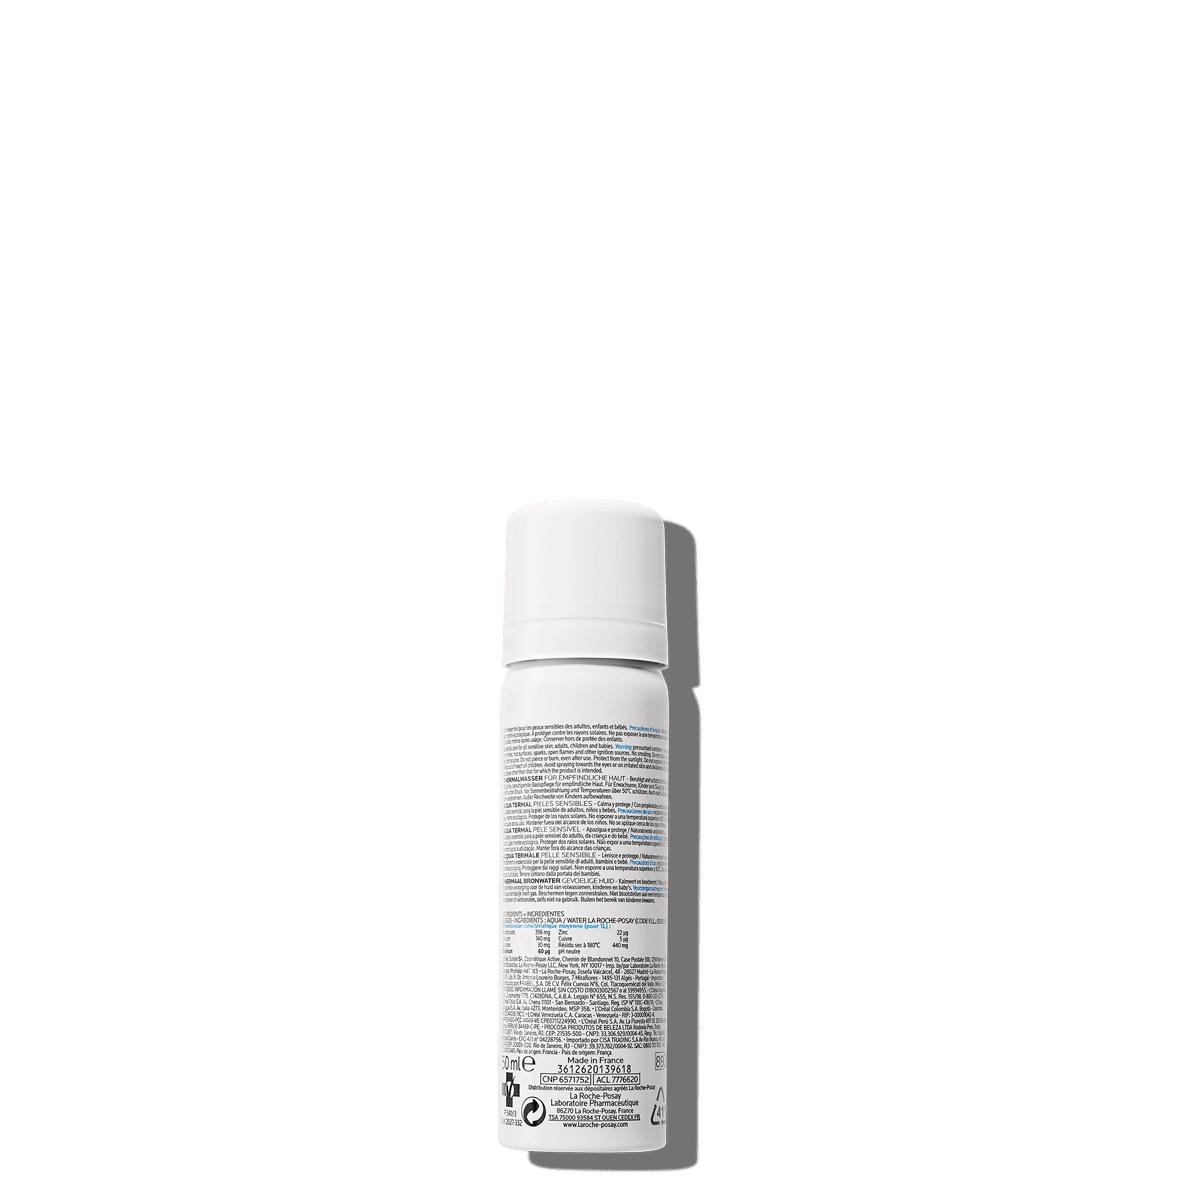 La Roche Posay ProductPage Thermal Spring Water 50ml 3433422403765 Bac